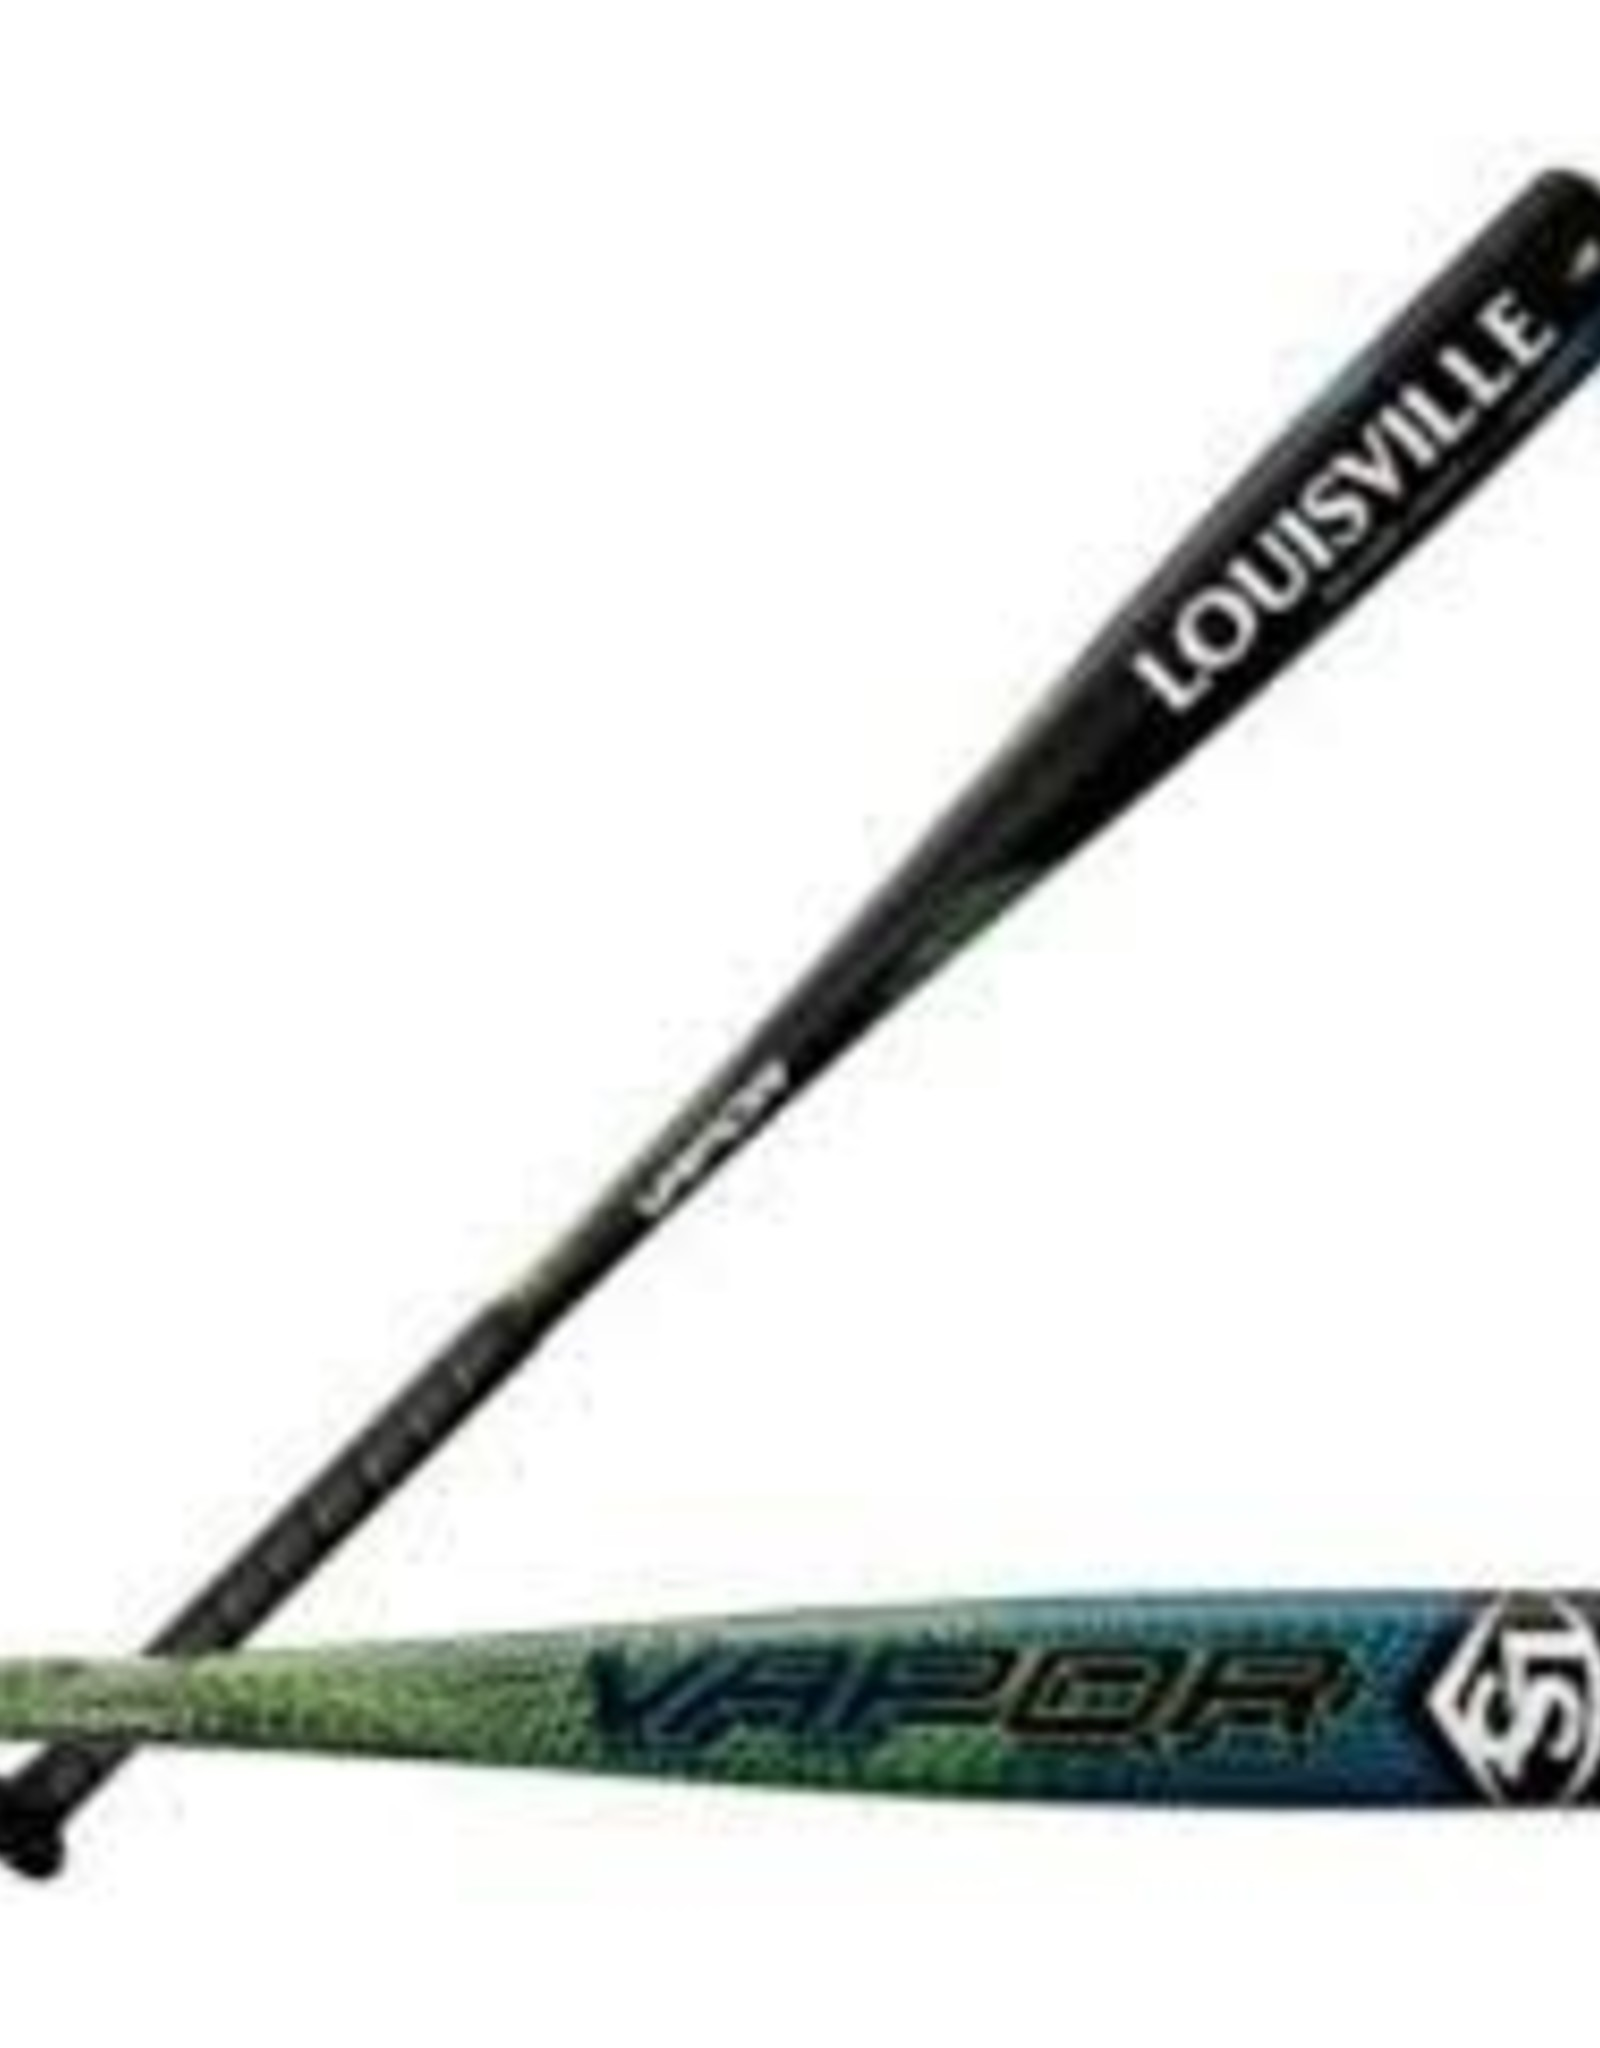 Louisville Slugger NON WOOD BAT  BBCOR BBCOR Vapor 20 (-3) 31